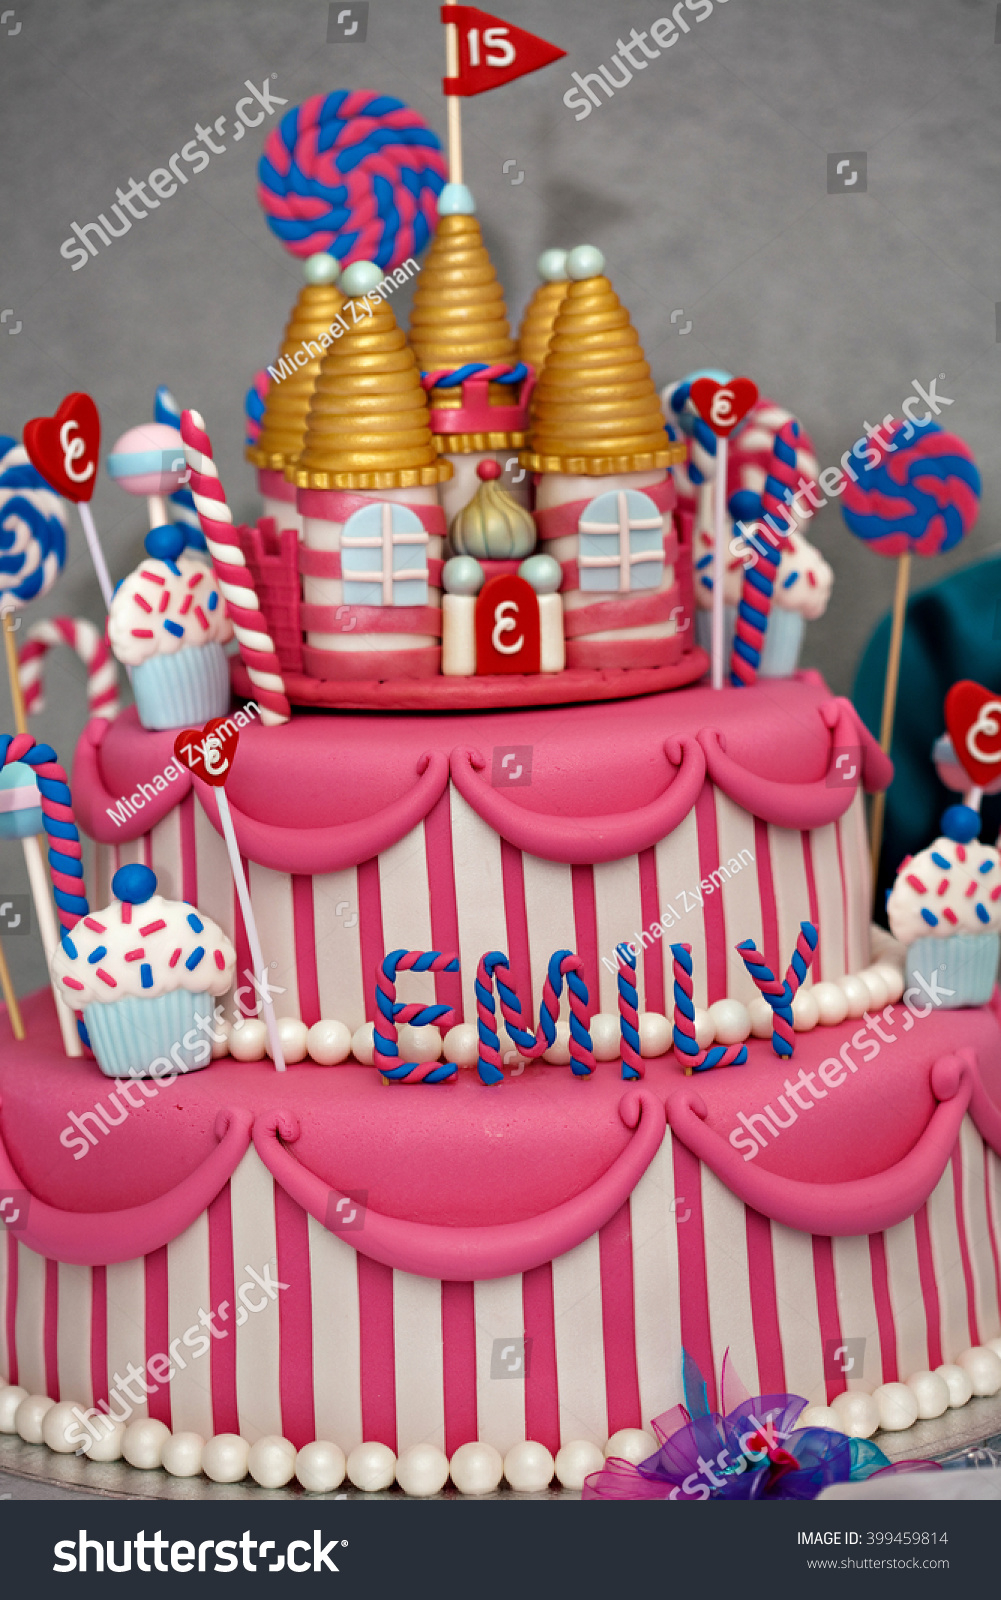 Fancy Birthday Cakes Fancy Birthday Cake Candyland Theme Three Stock Photo Edit Now